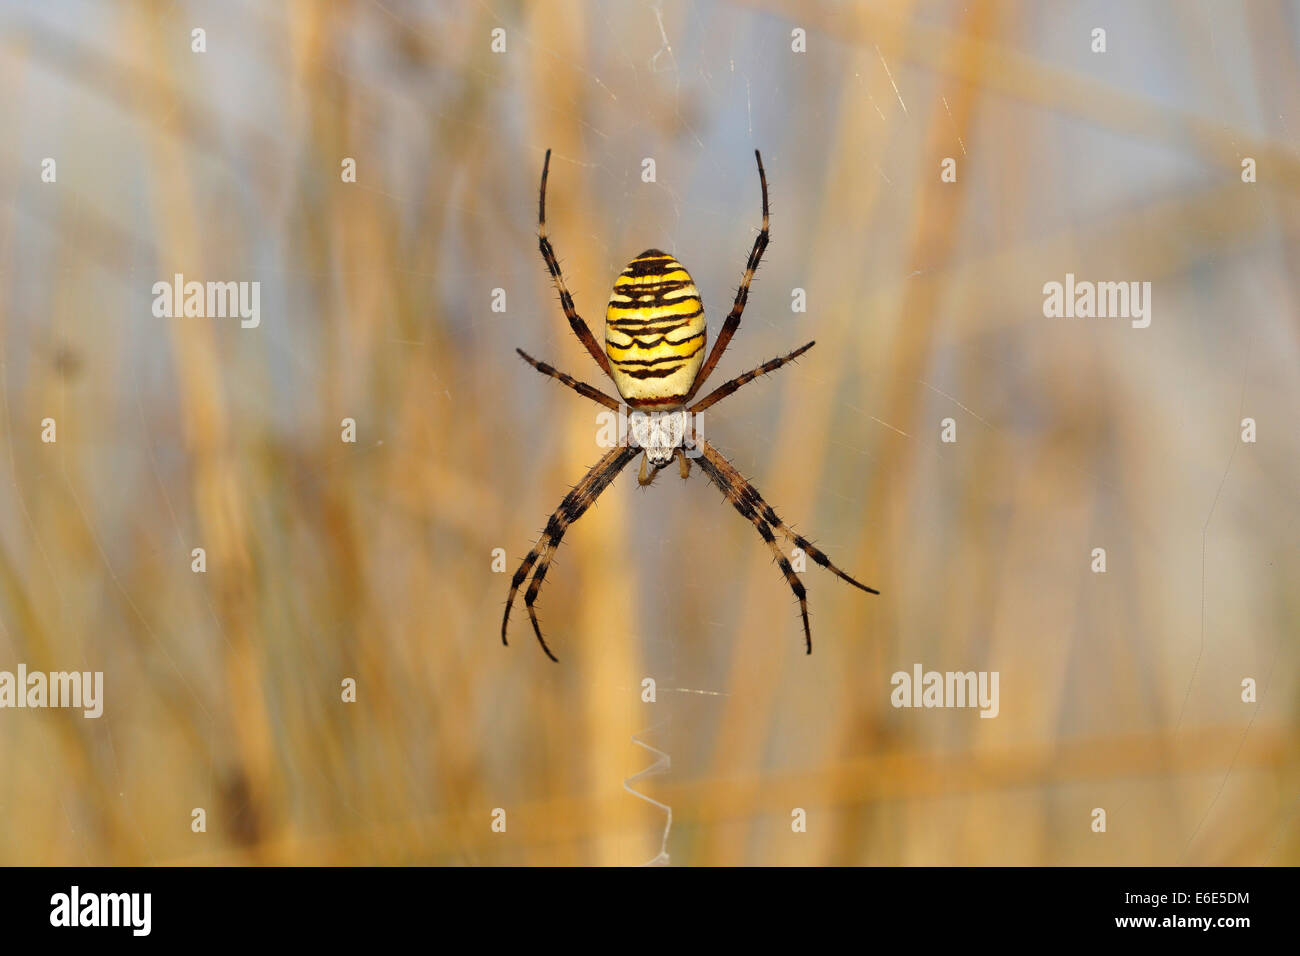 Orb Weaving Spiders Stock Photos & Orb Weaving Spiders Stock Images ...